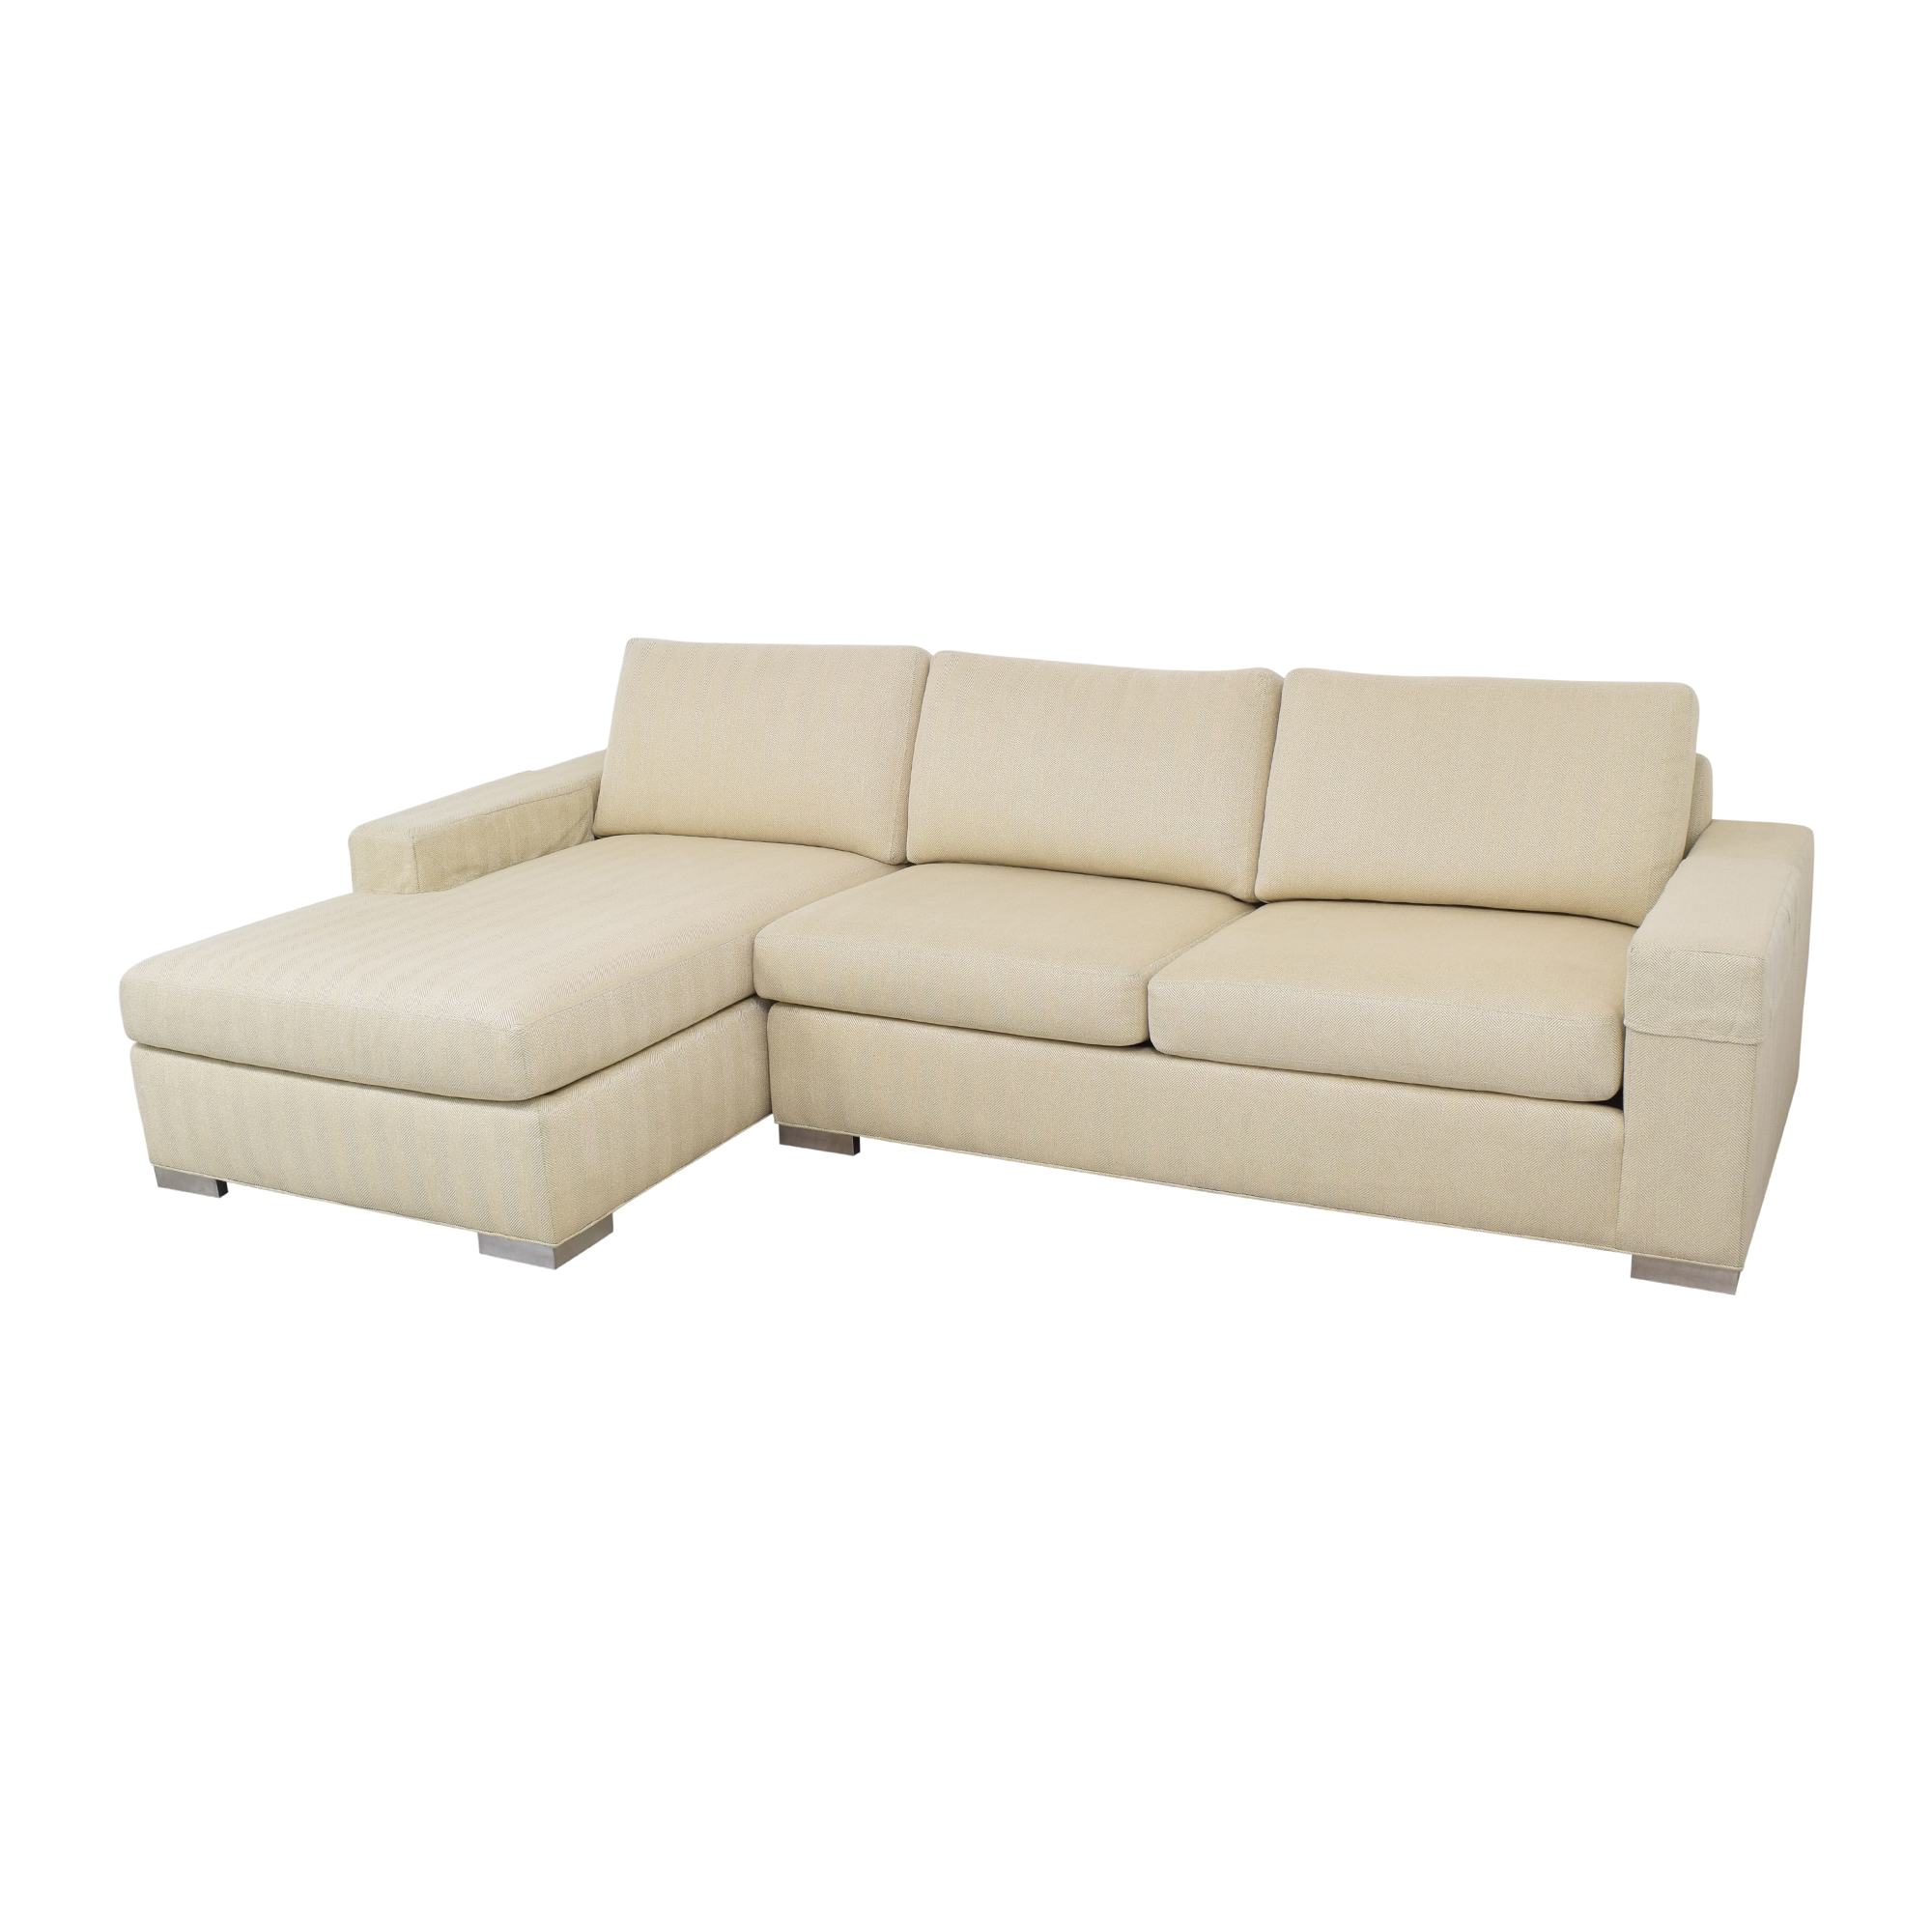 Ethan Allen Ethan Allen Conway Sectional Sofa on sale